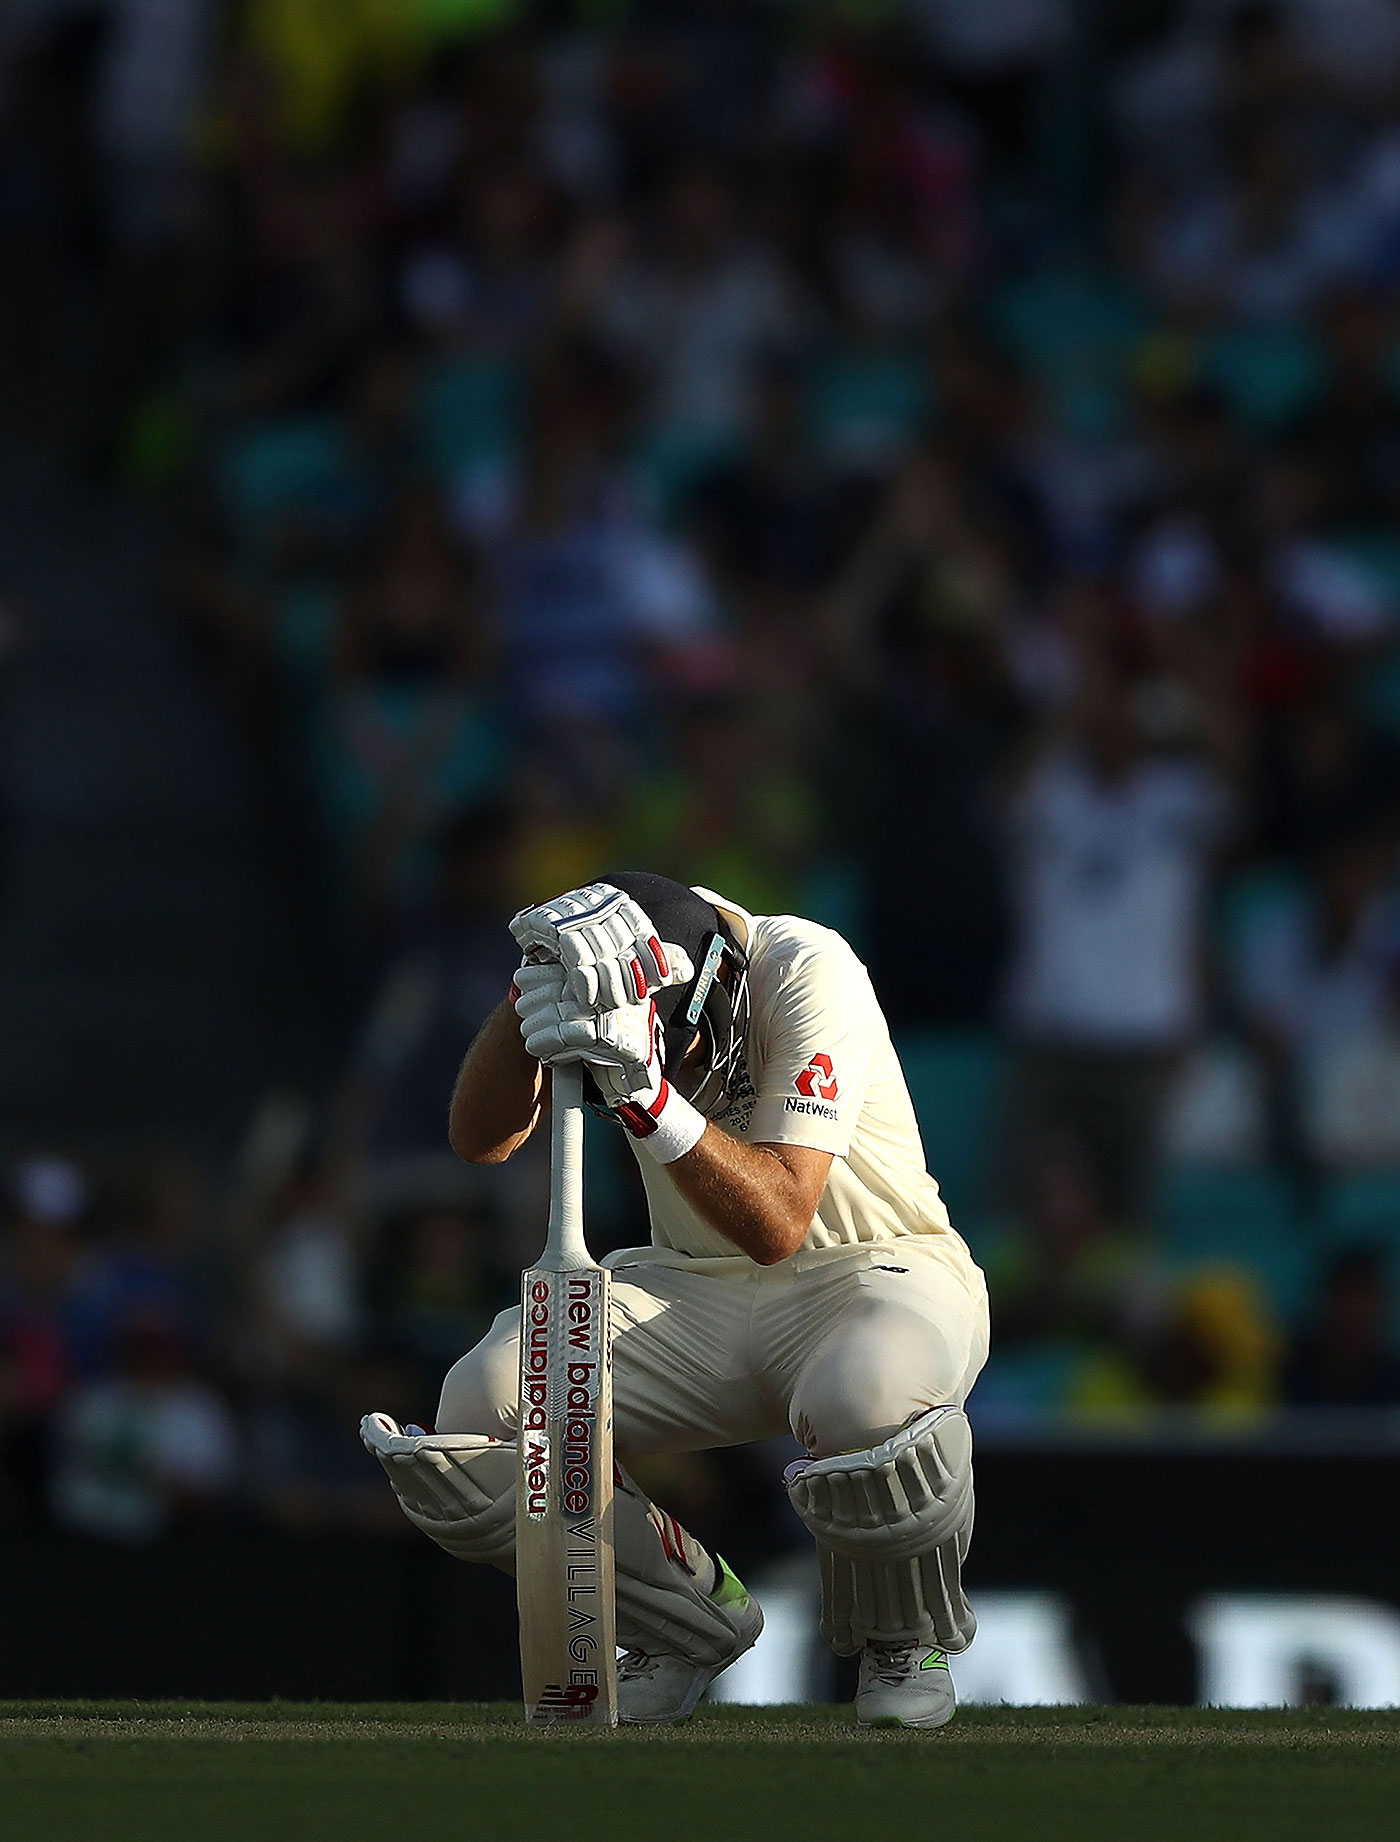 The Ashes 2017-18: Out Of Form James Vince Set To Get Another Chance